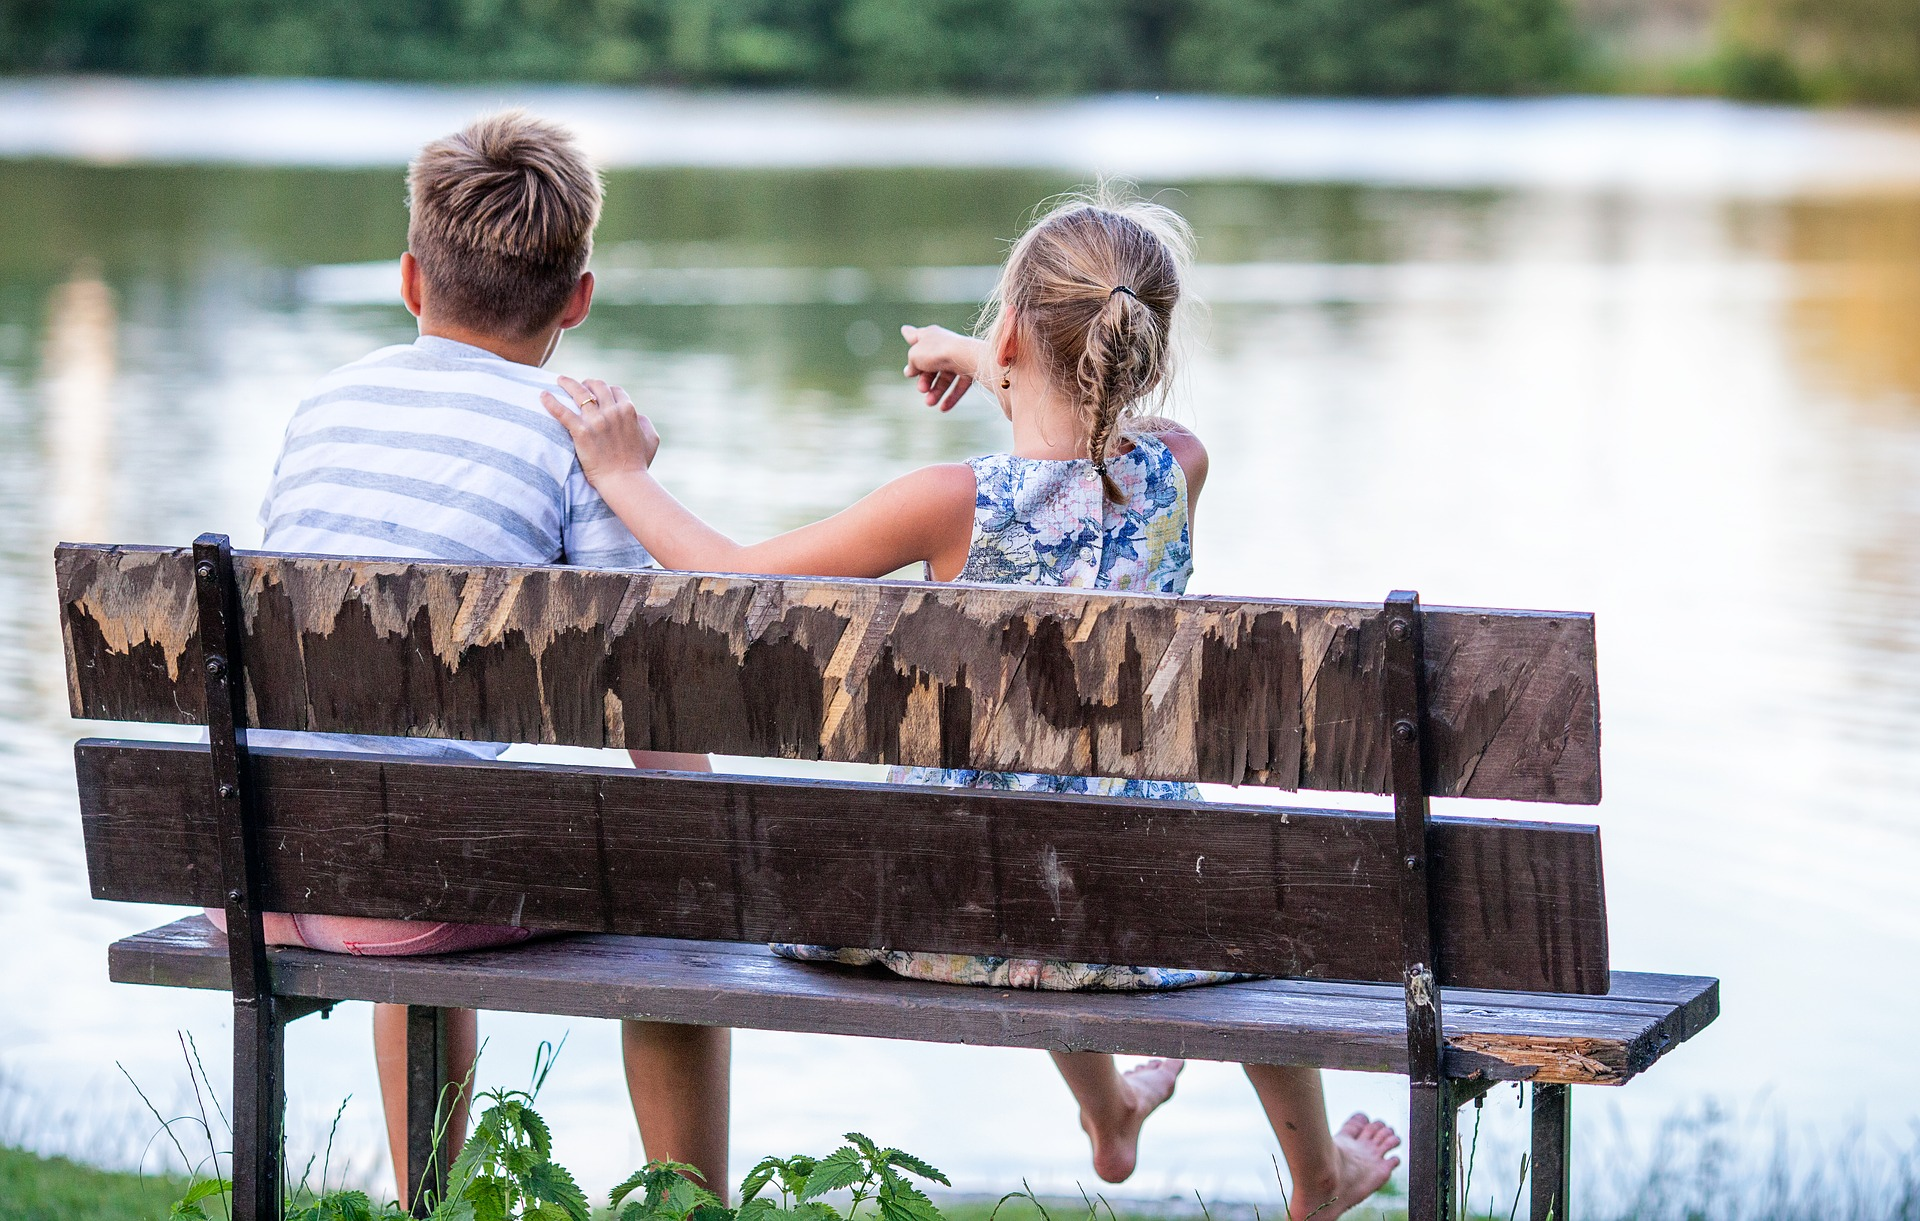 children on bench